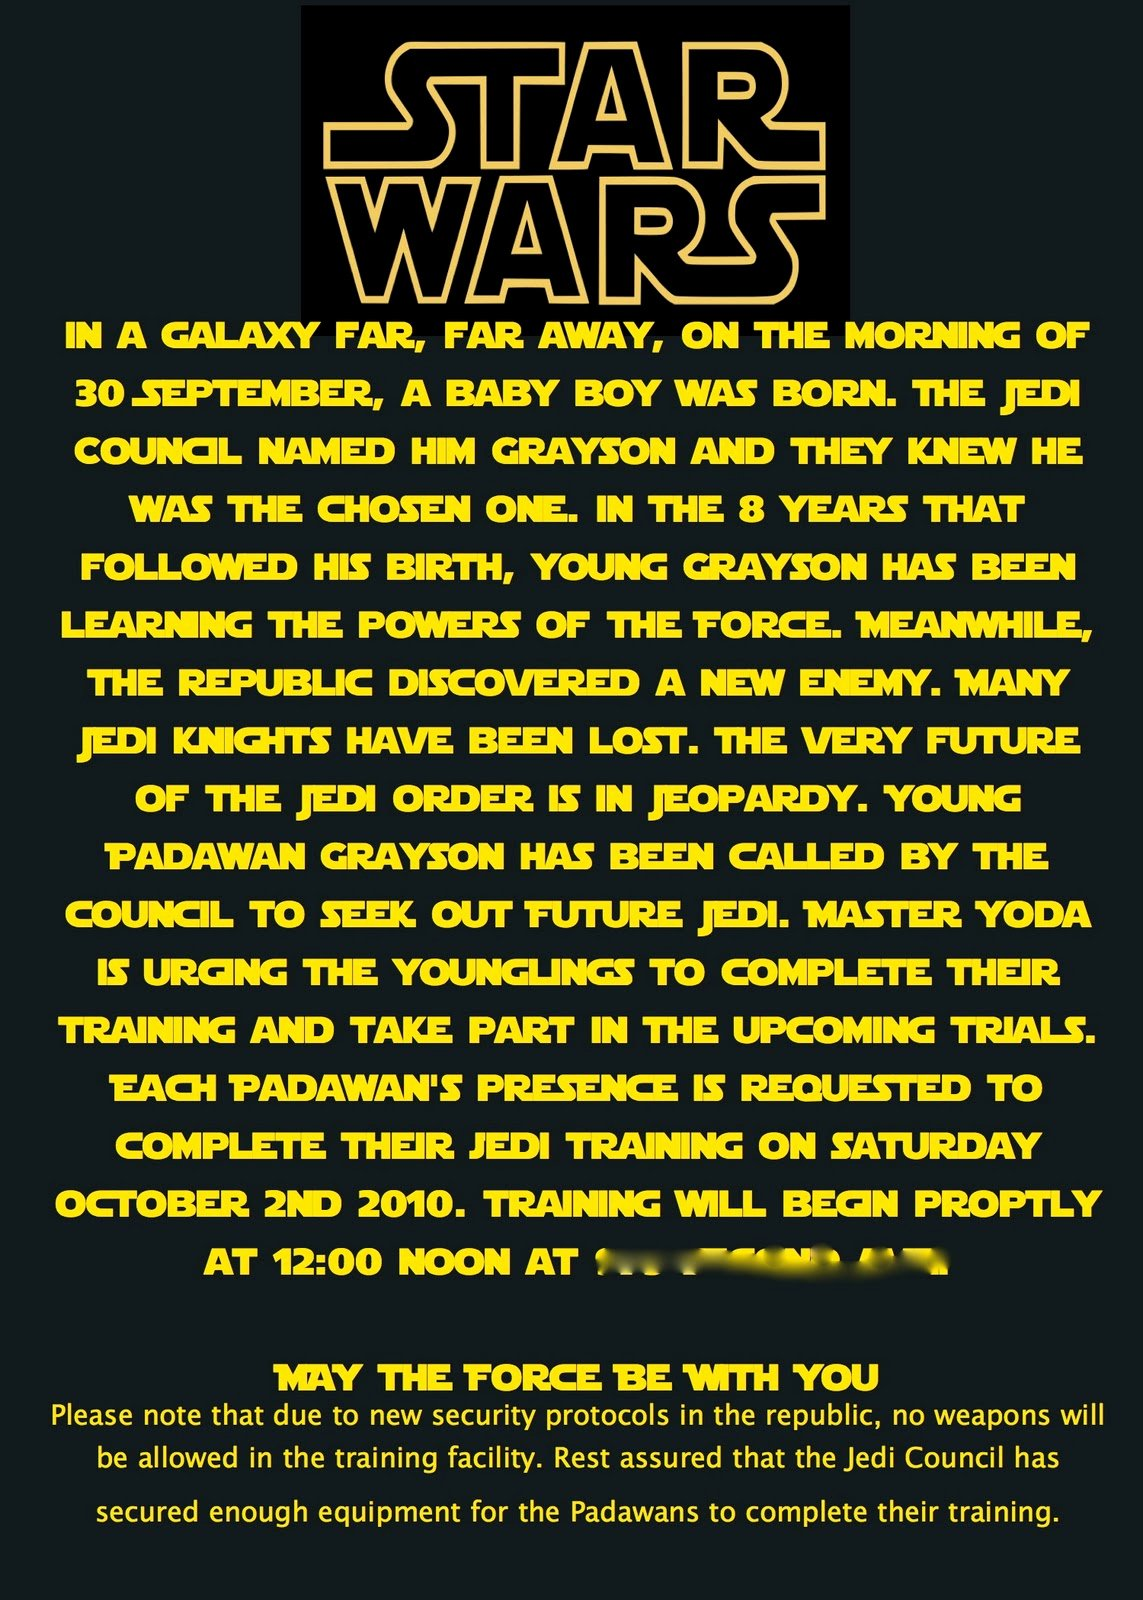 Star Wars Birthday Invitation Wording Luxury at Second Street Star Wars Party What I Did